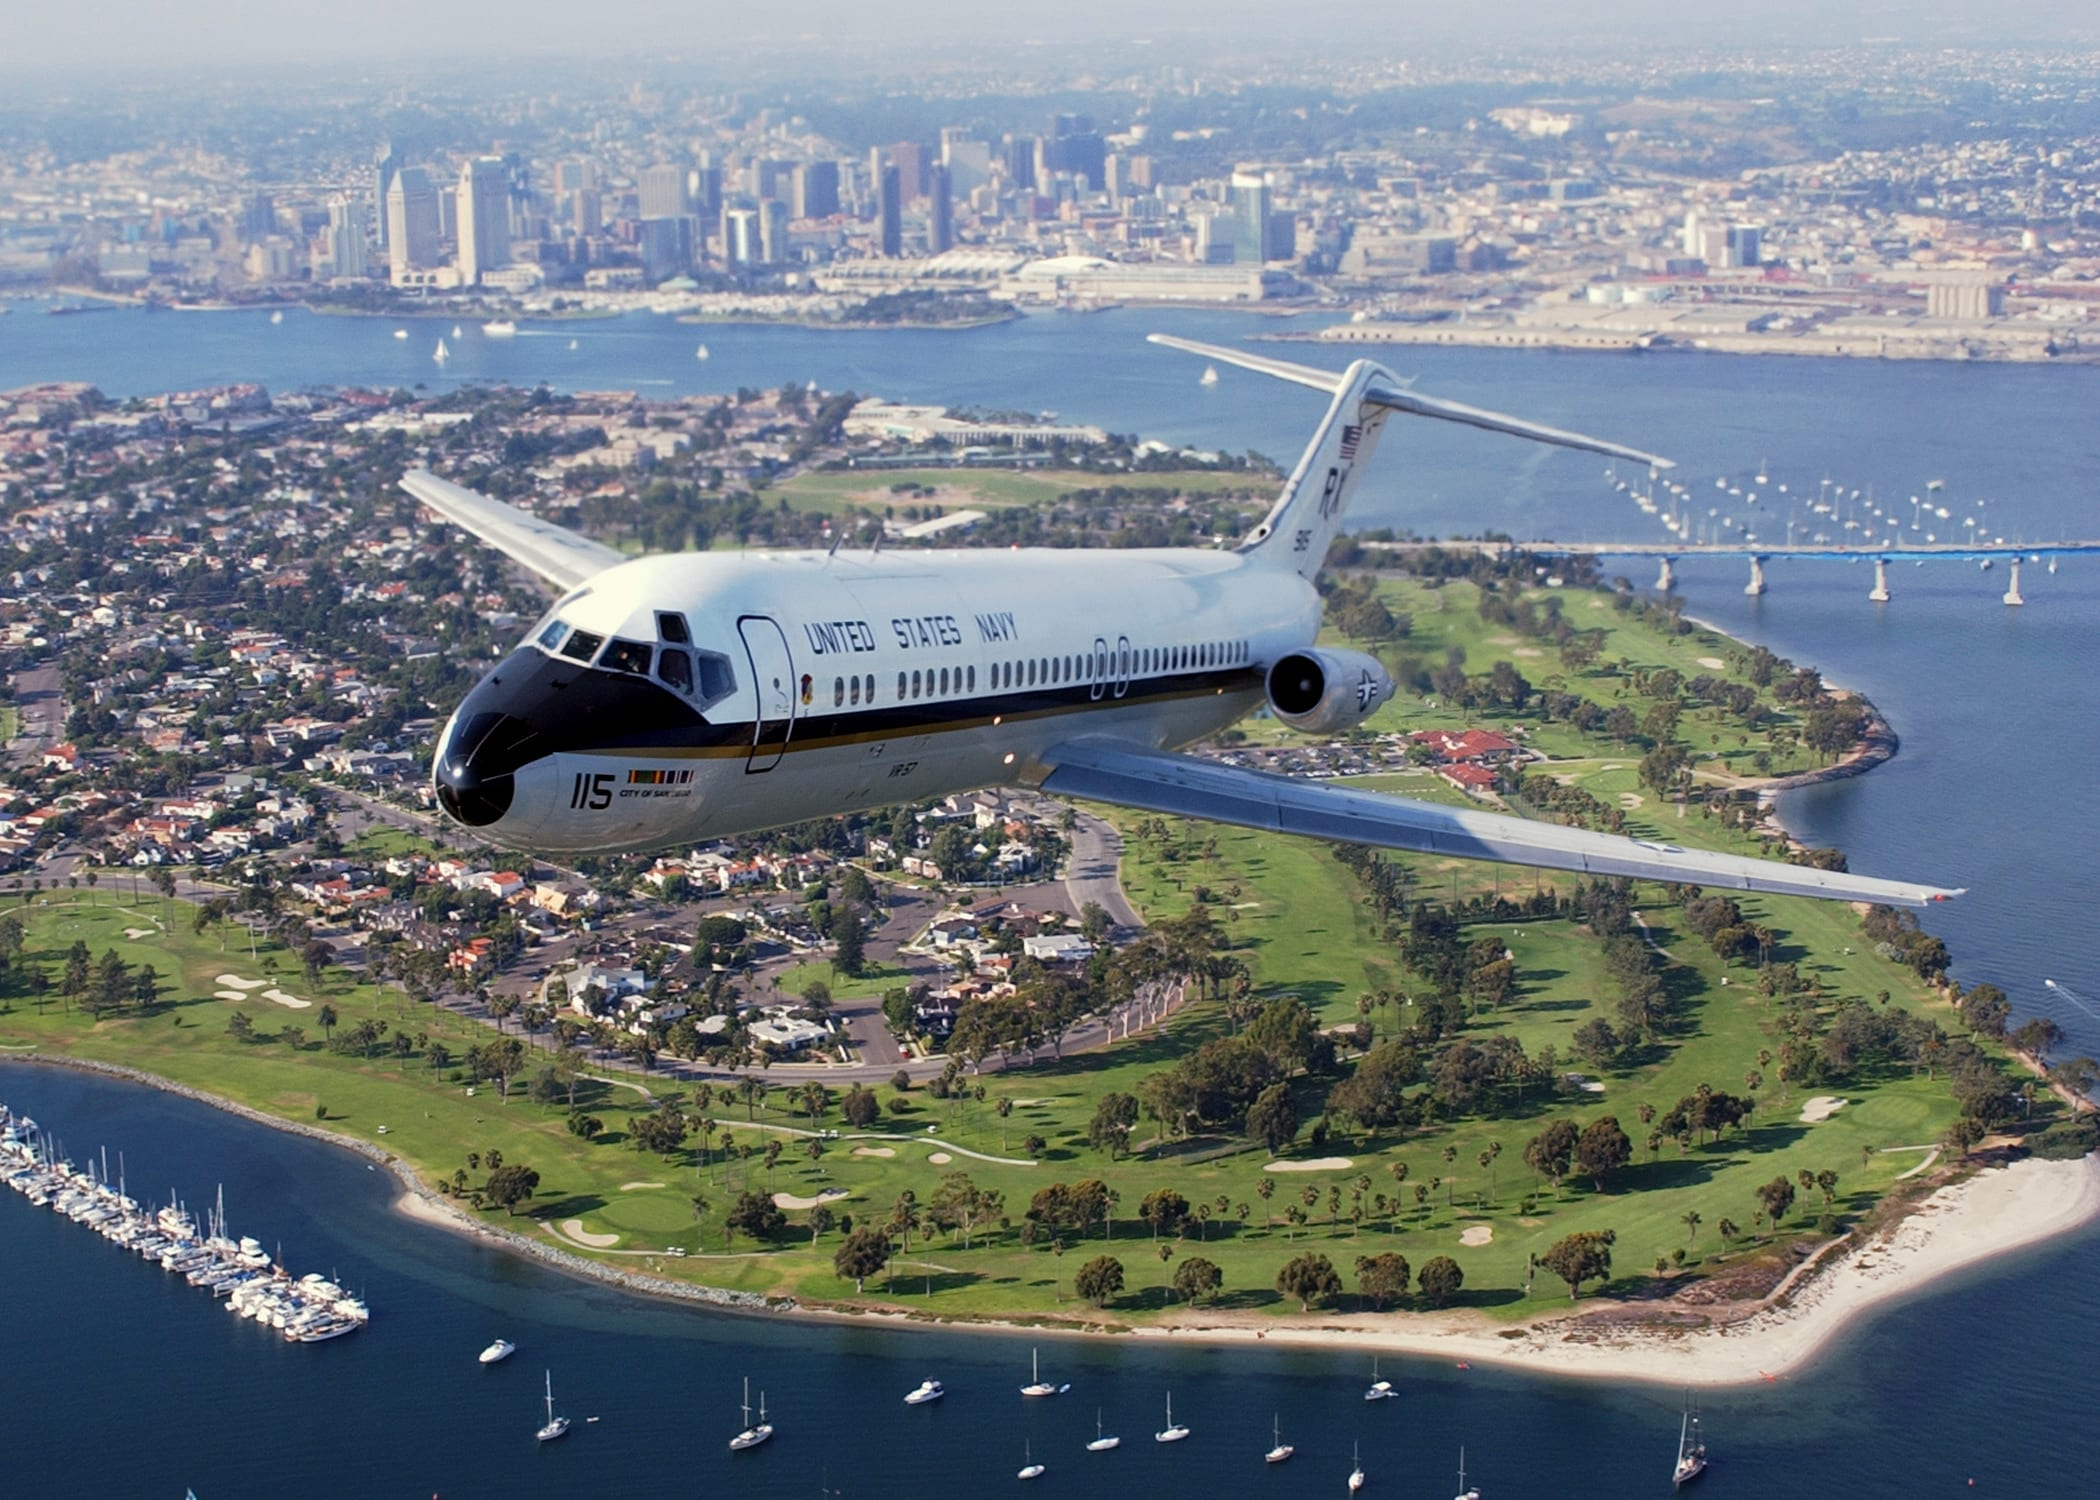 030819-N-6501M-005 San Diego, Calif. (Aug. 19, 2003) -- With the San Diego skyline in the background, a C-9B Skytrain II assign to the